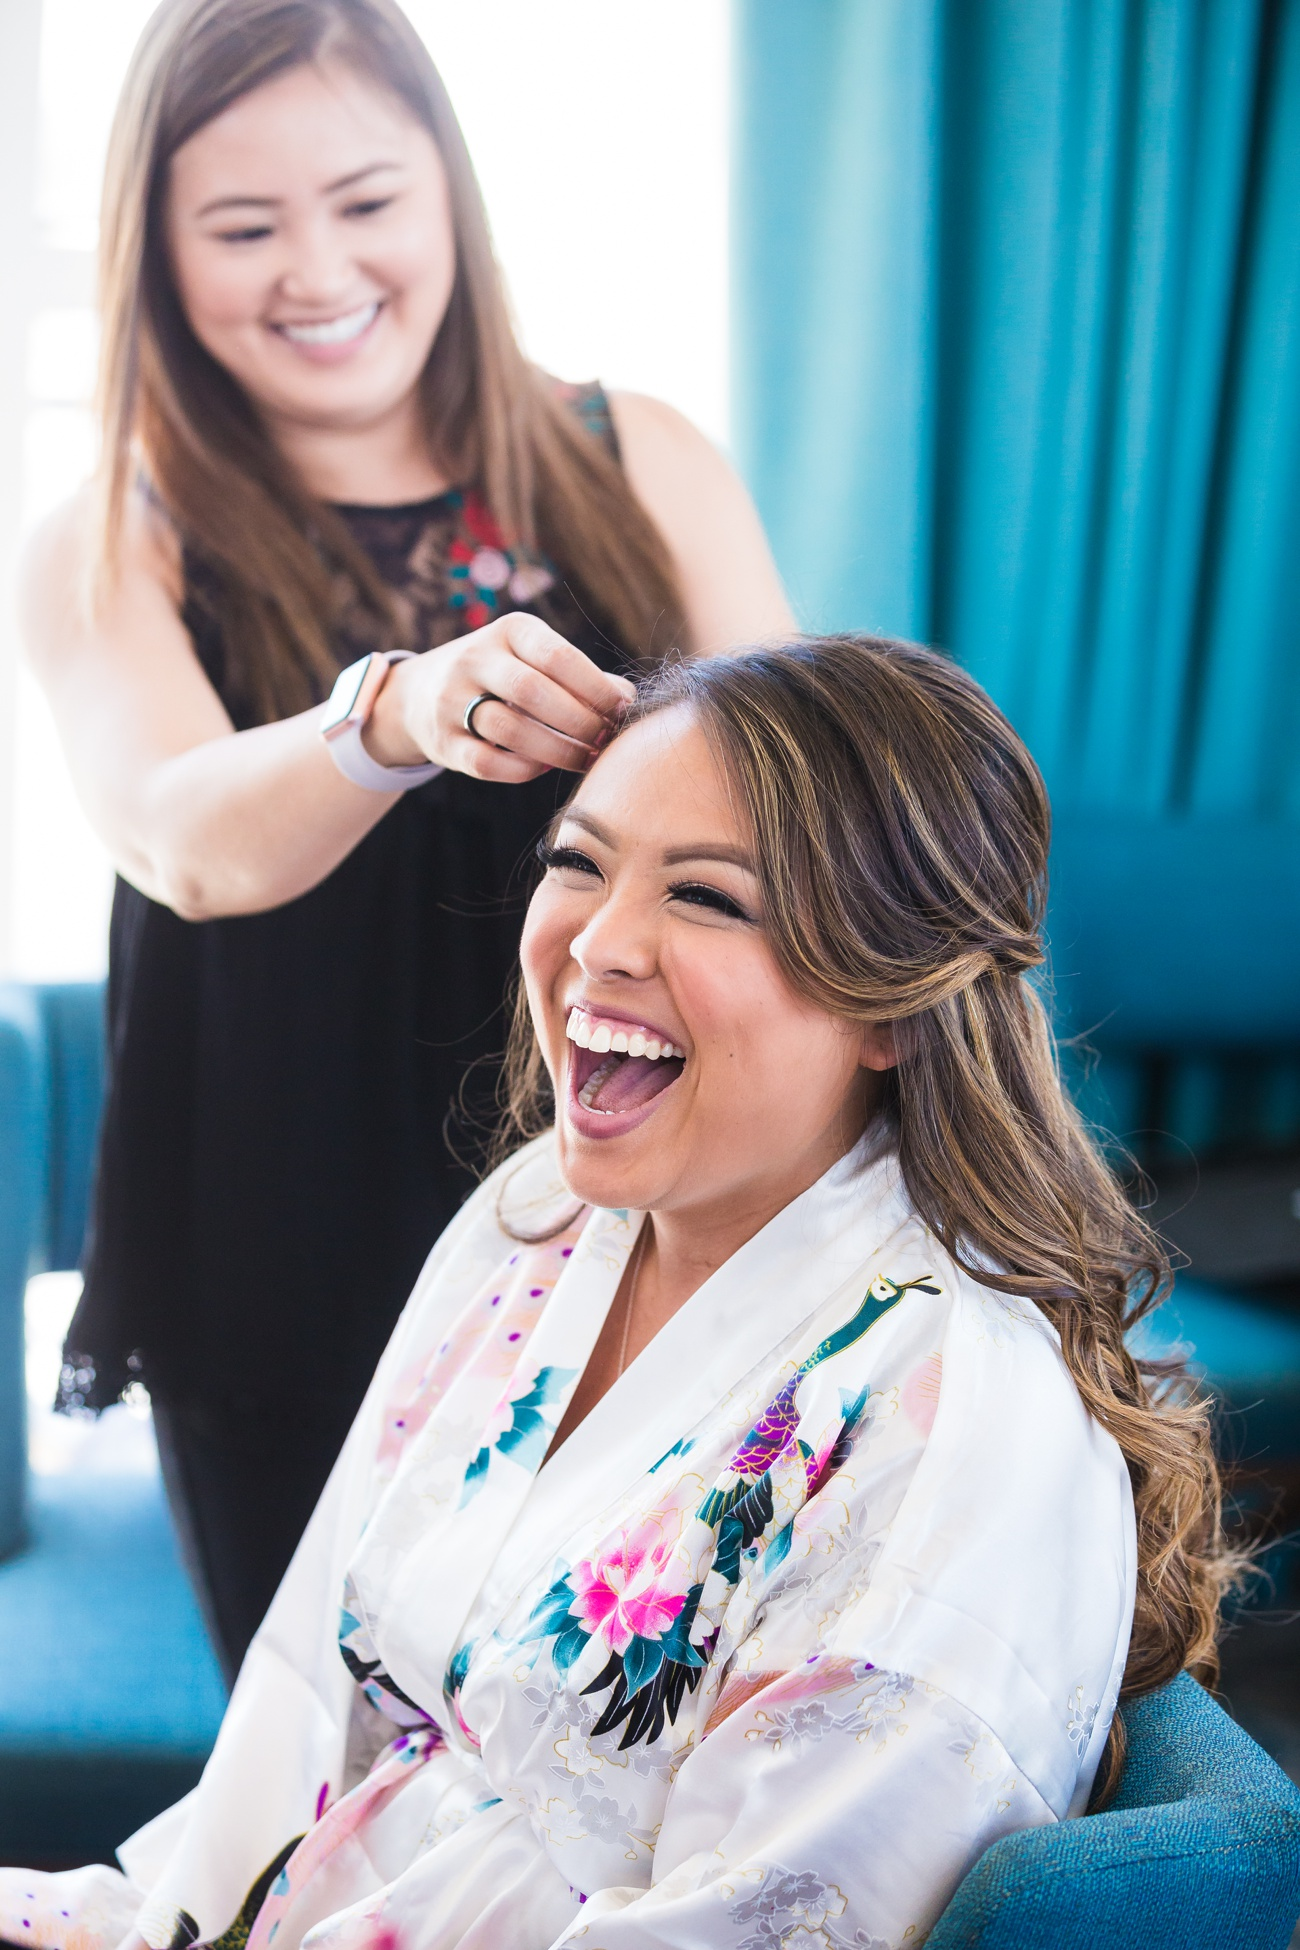 Luong Lasting Hair and Makeup team get's the bride ready for the big day